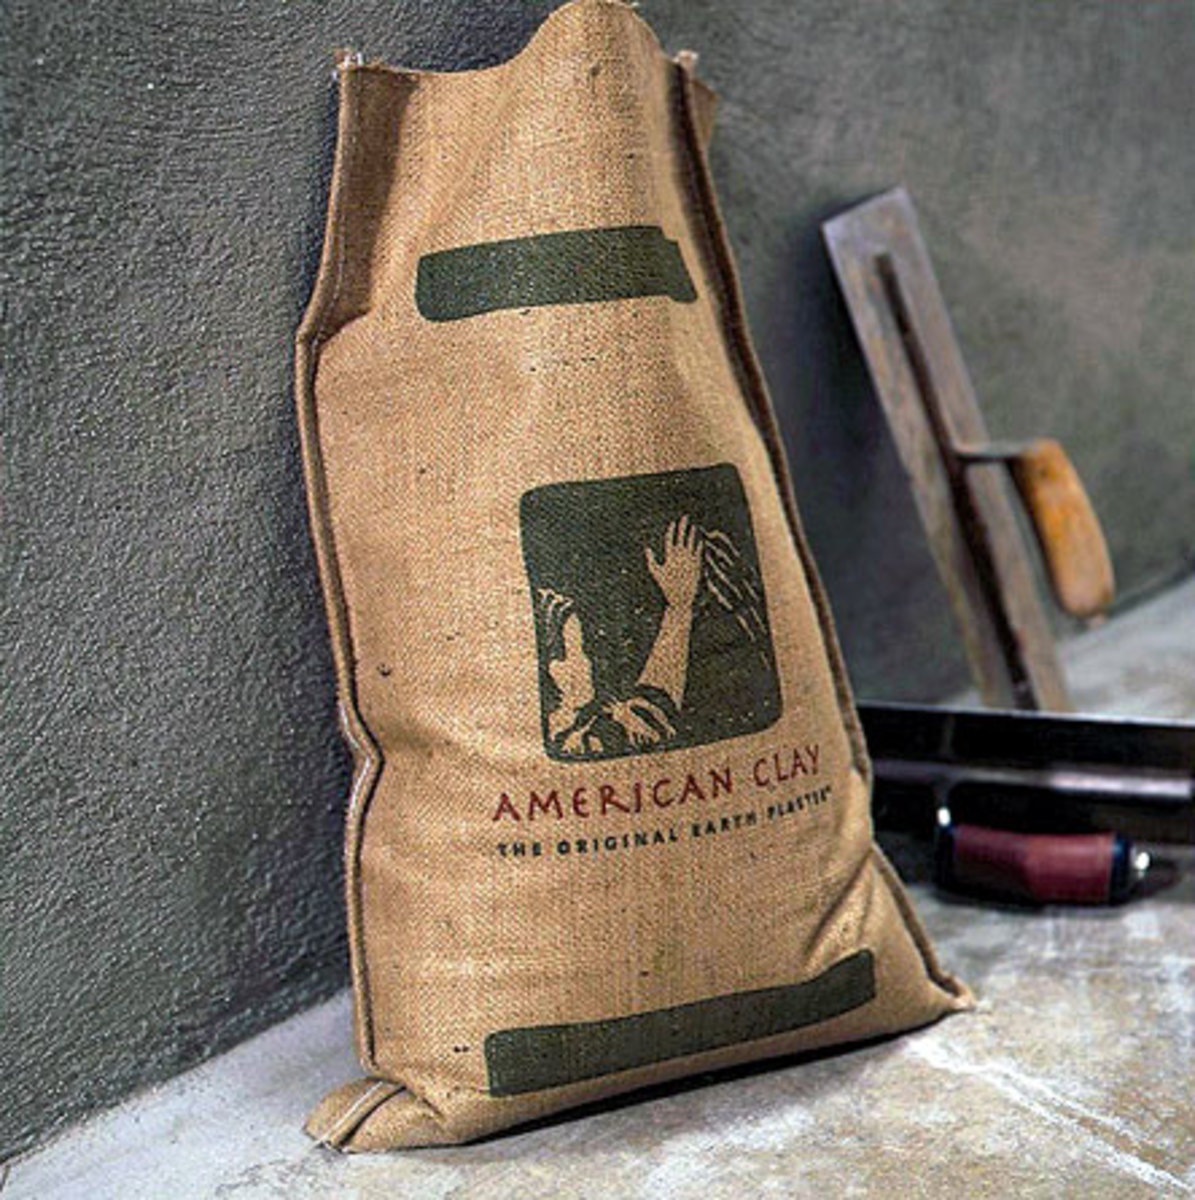 bag of American Clay earth plaster